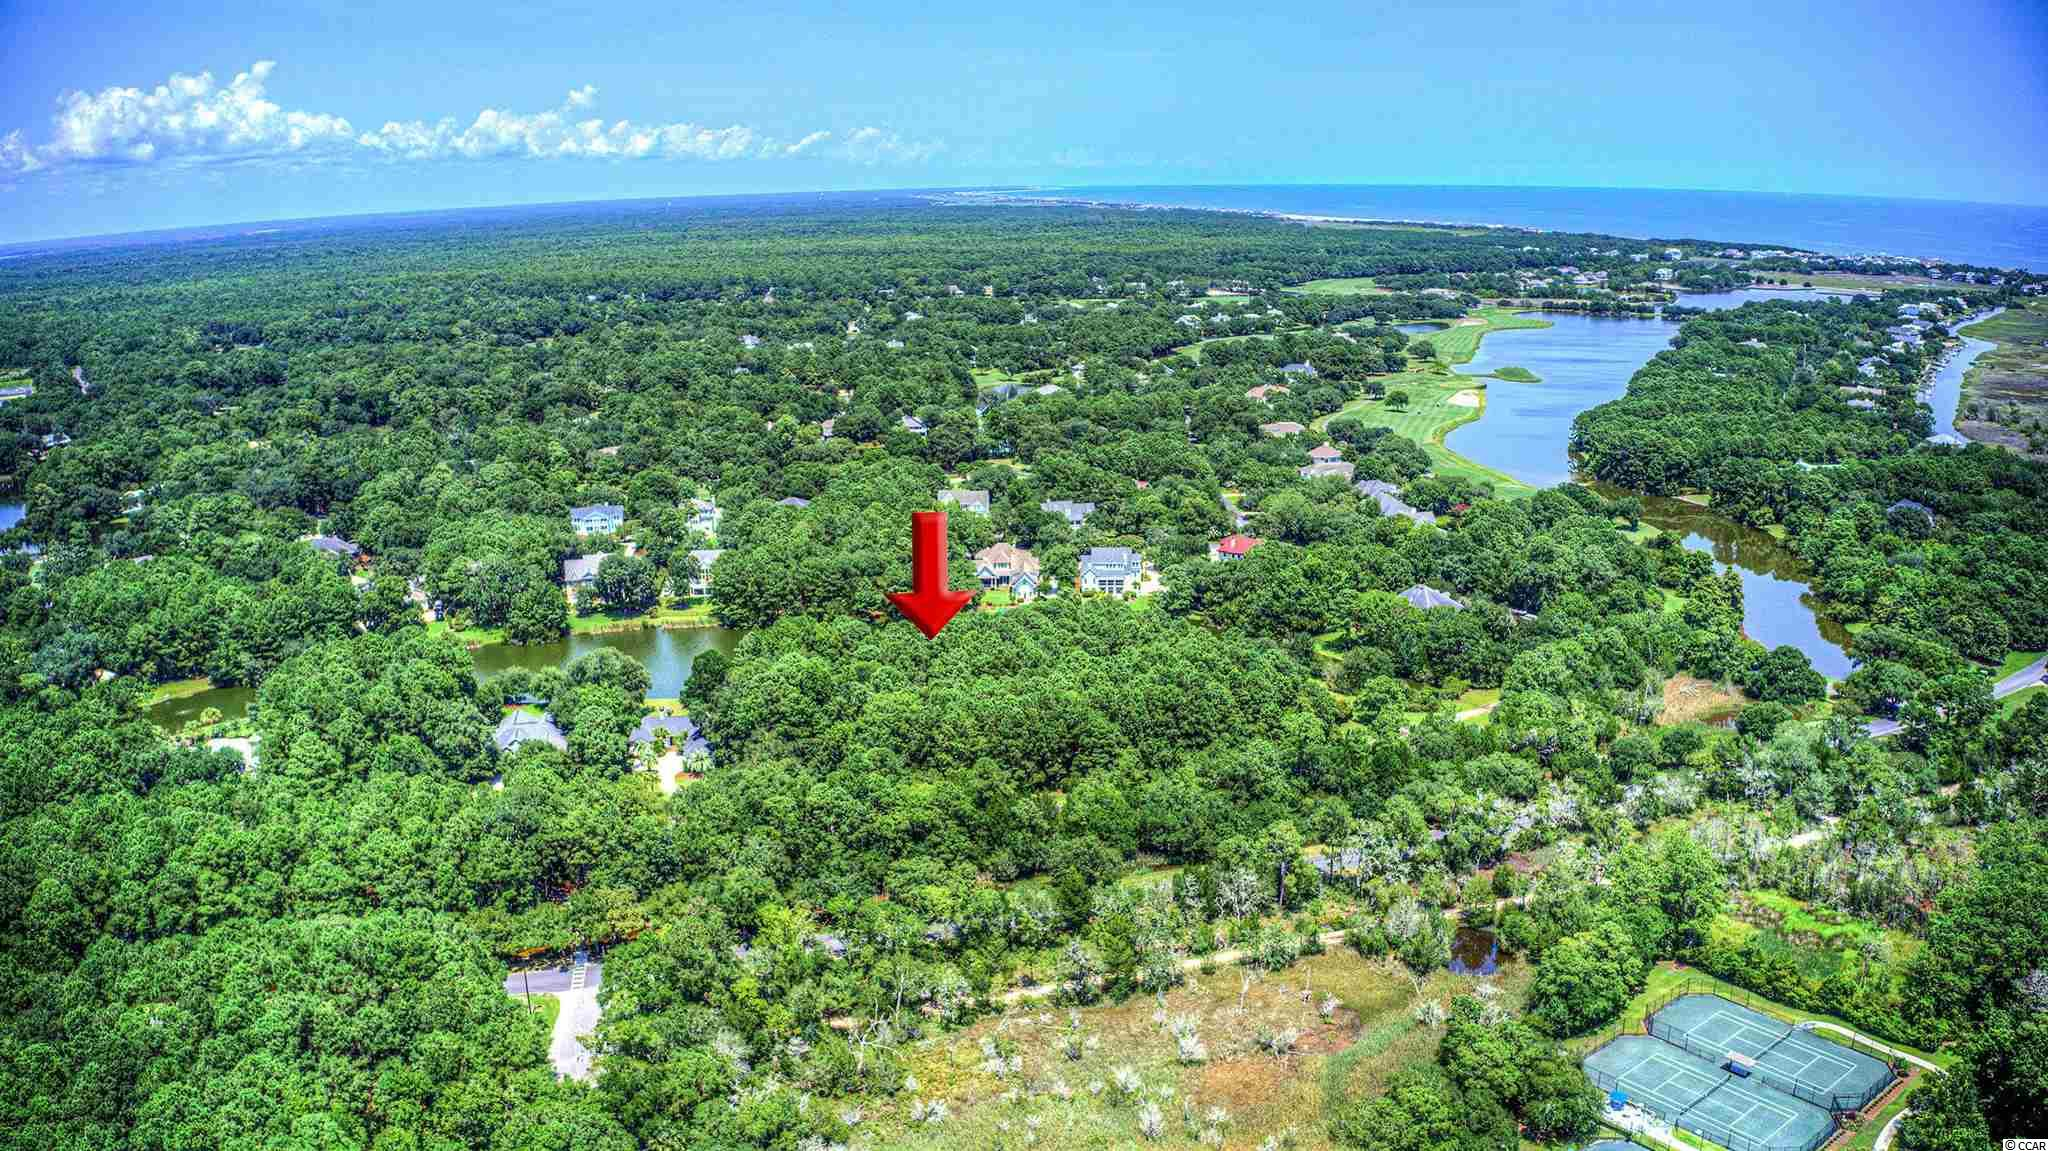 This lakefront lot boasts over 1/2 an acre and with almost 100 ft of lake frontage. The lot is located just a stones throw from the tennis center, world class golf, miles of pristine shoreline, beach club, and the saltwater estuary of North Inlet. For a coastal outdoorsman, there is nothing that you could want that Debordieu doesn't offer.